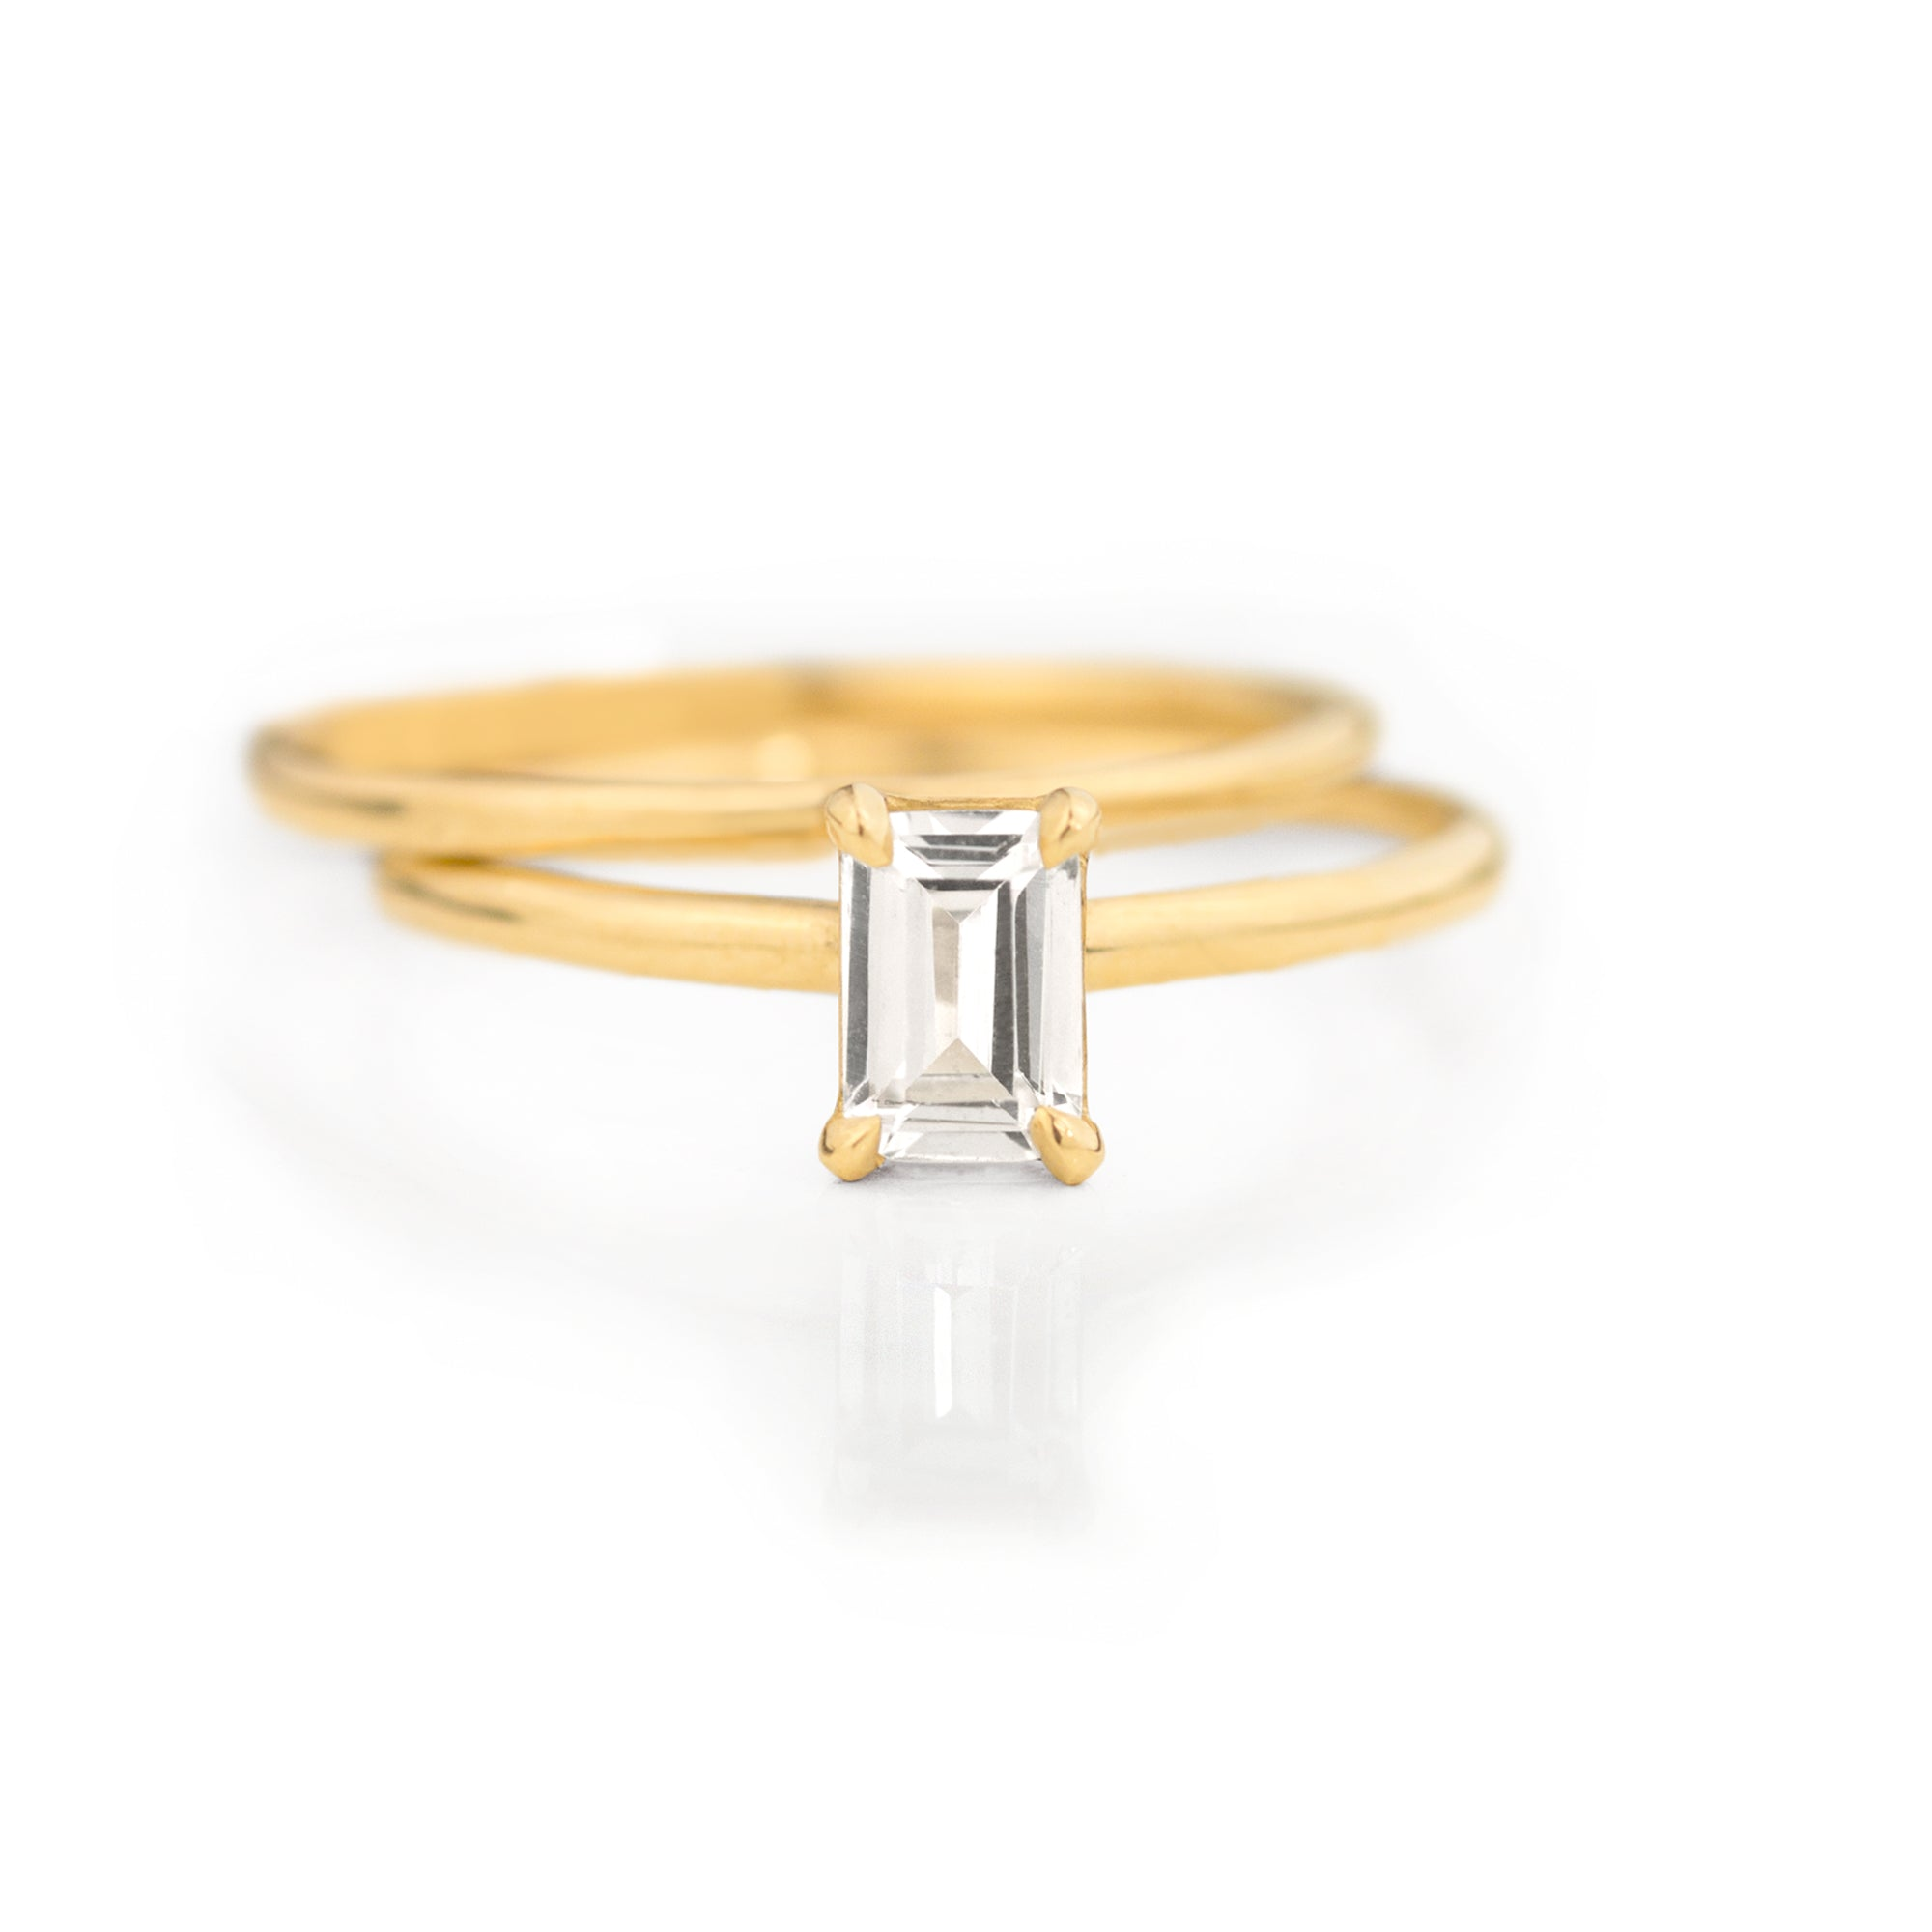 Emerald Cut White Sapphire Ring Set